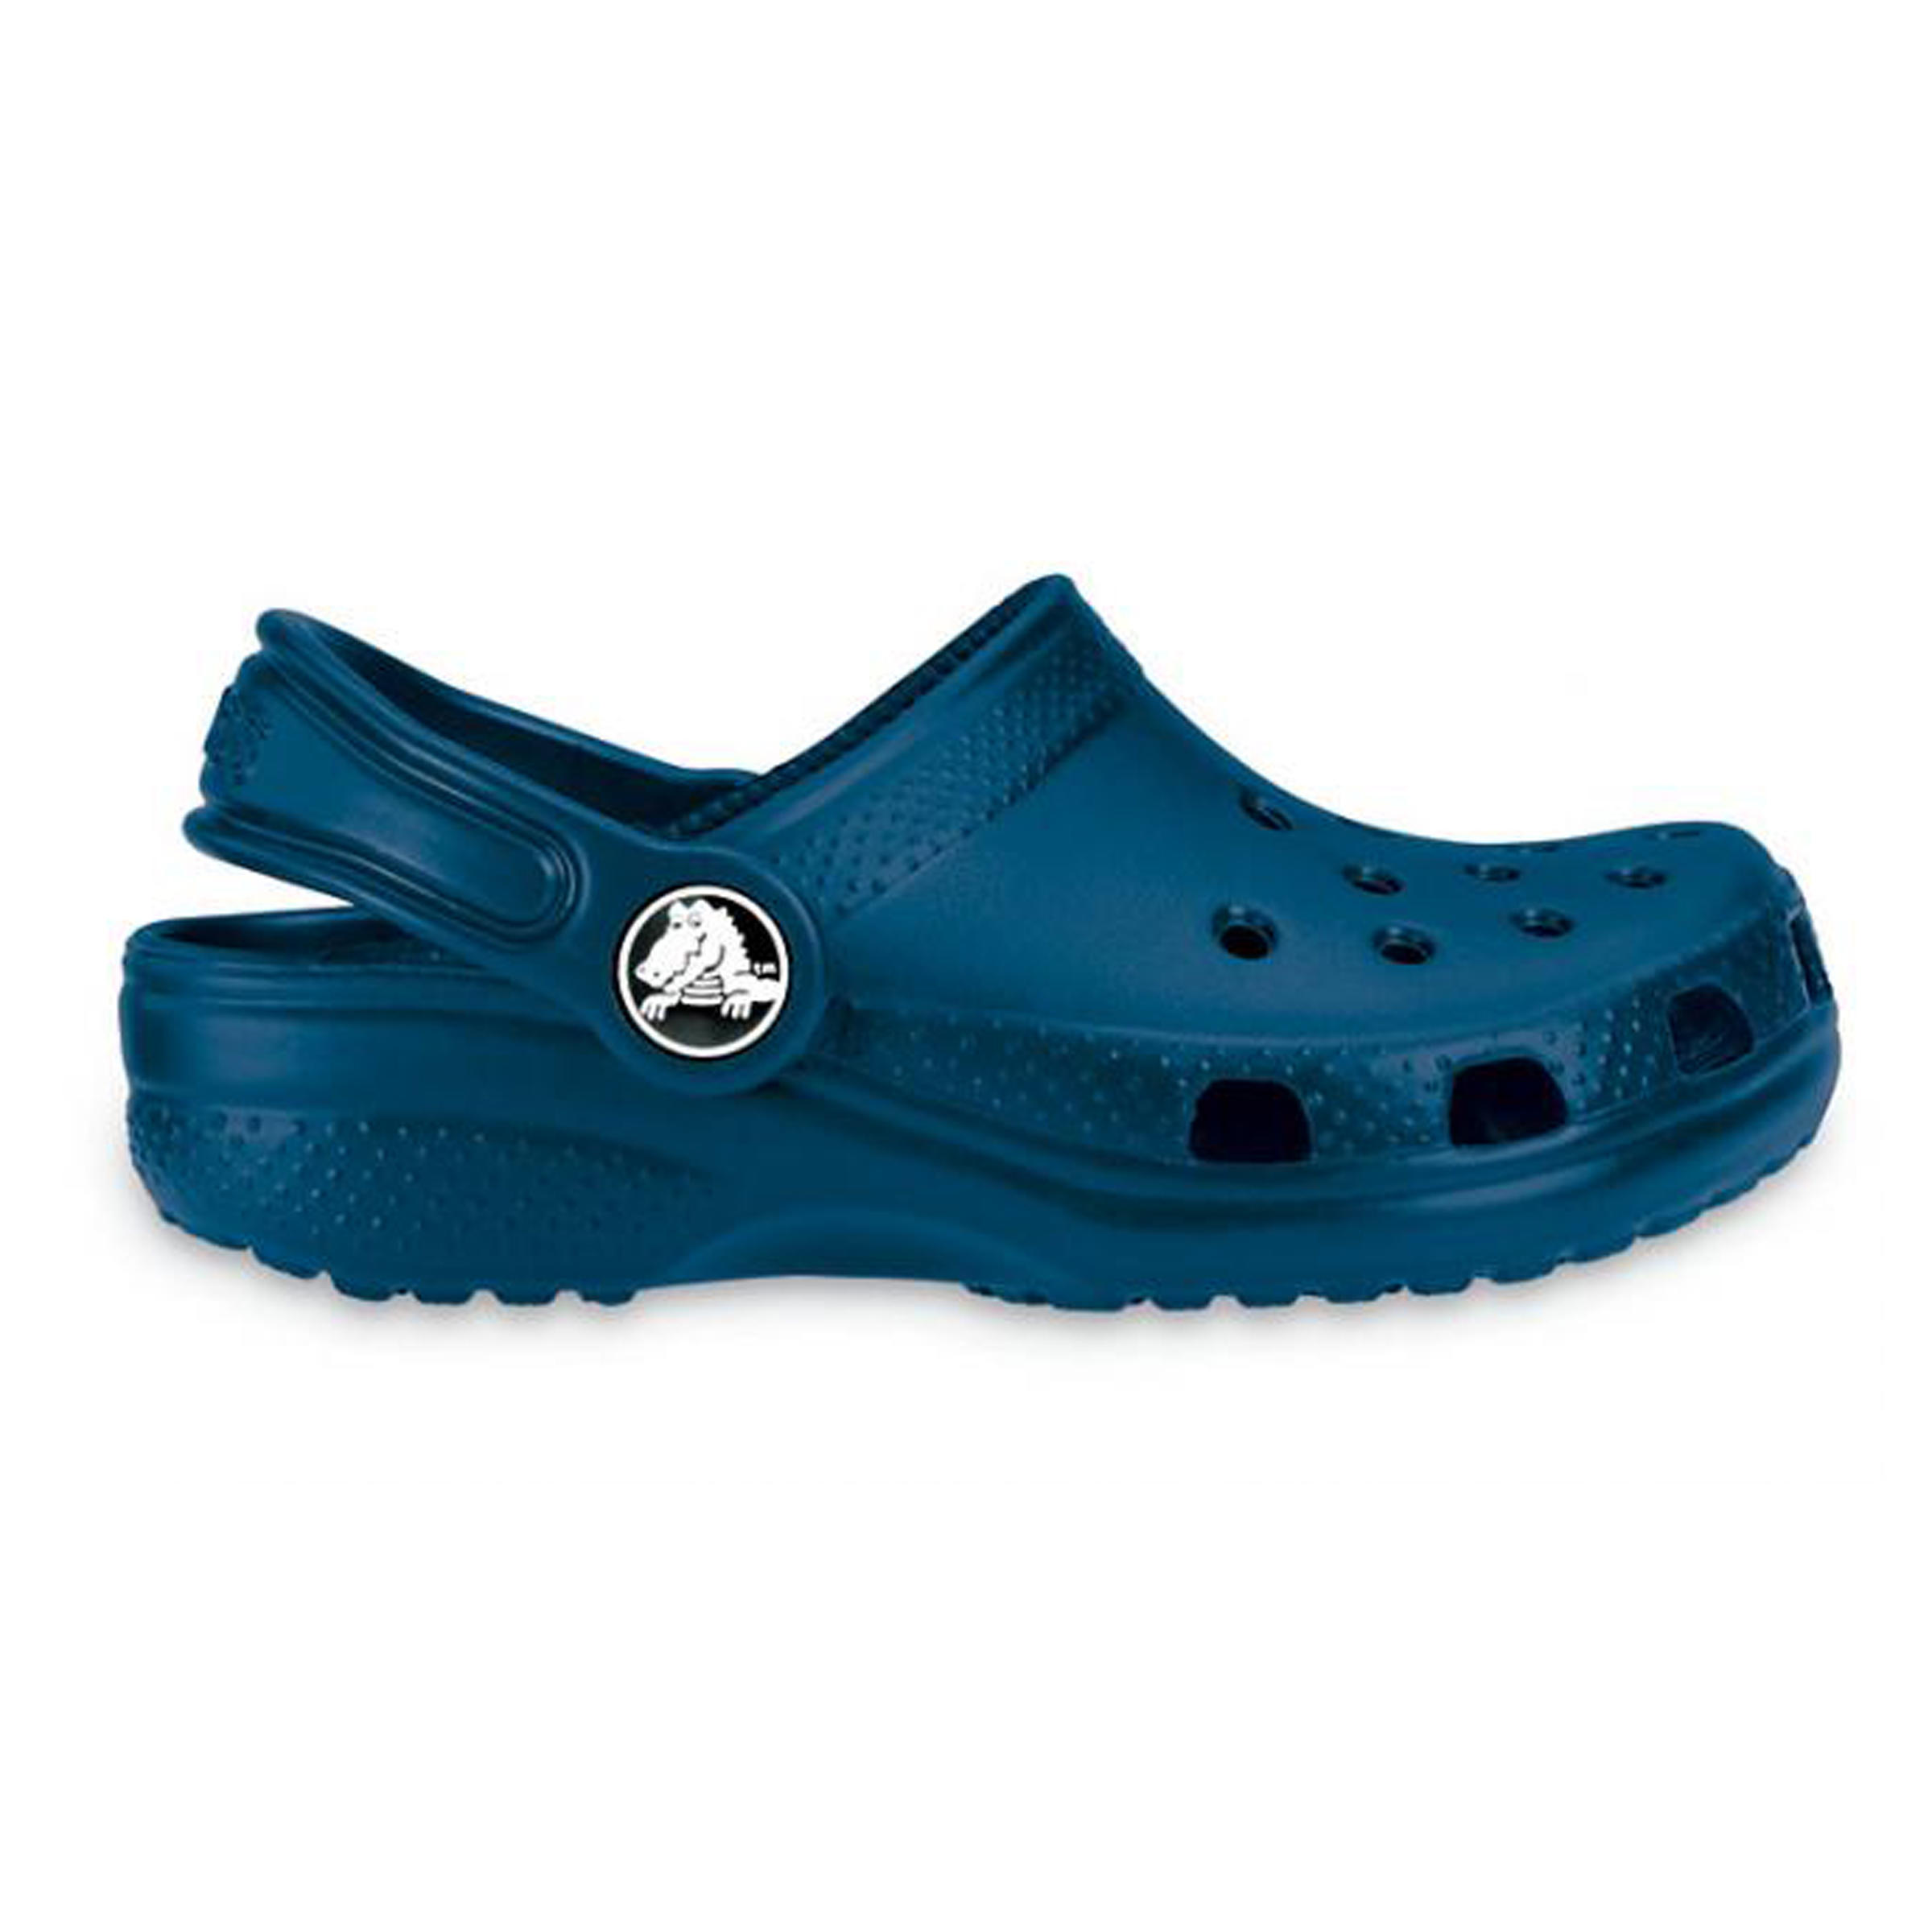 crocs decathlon